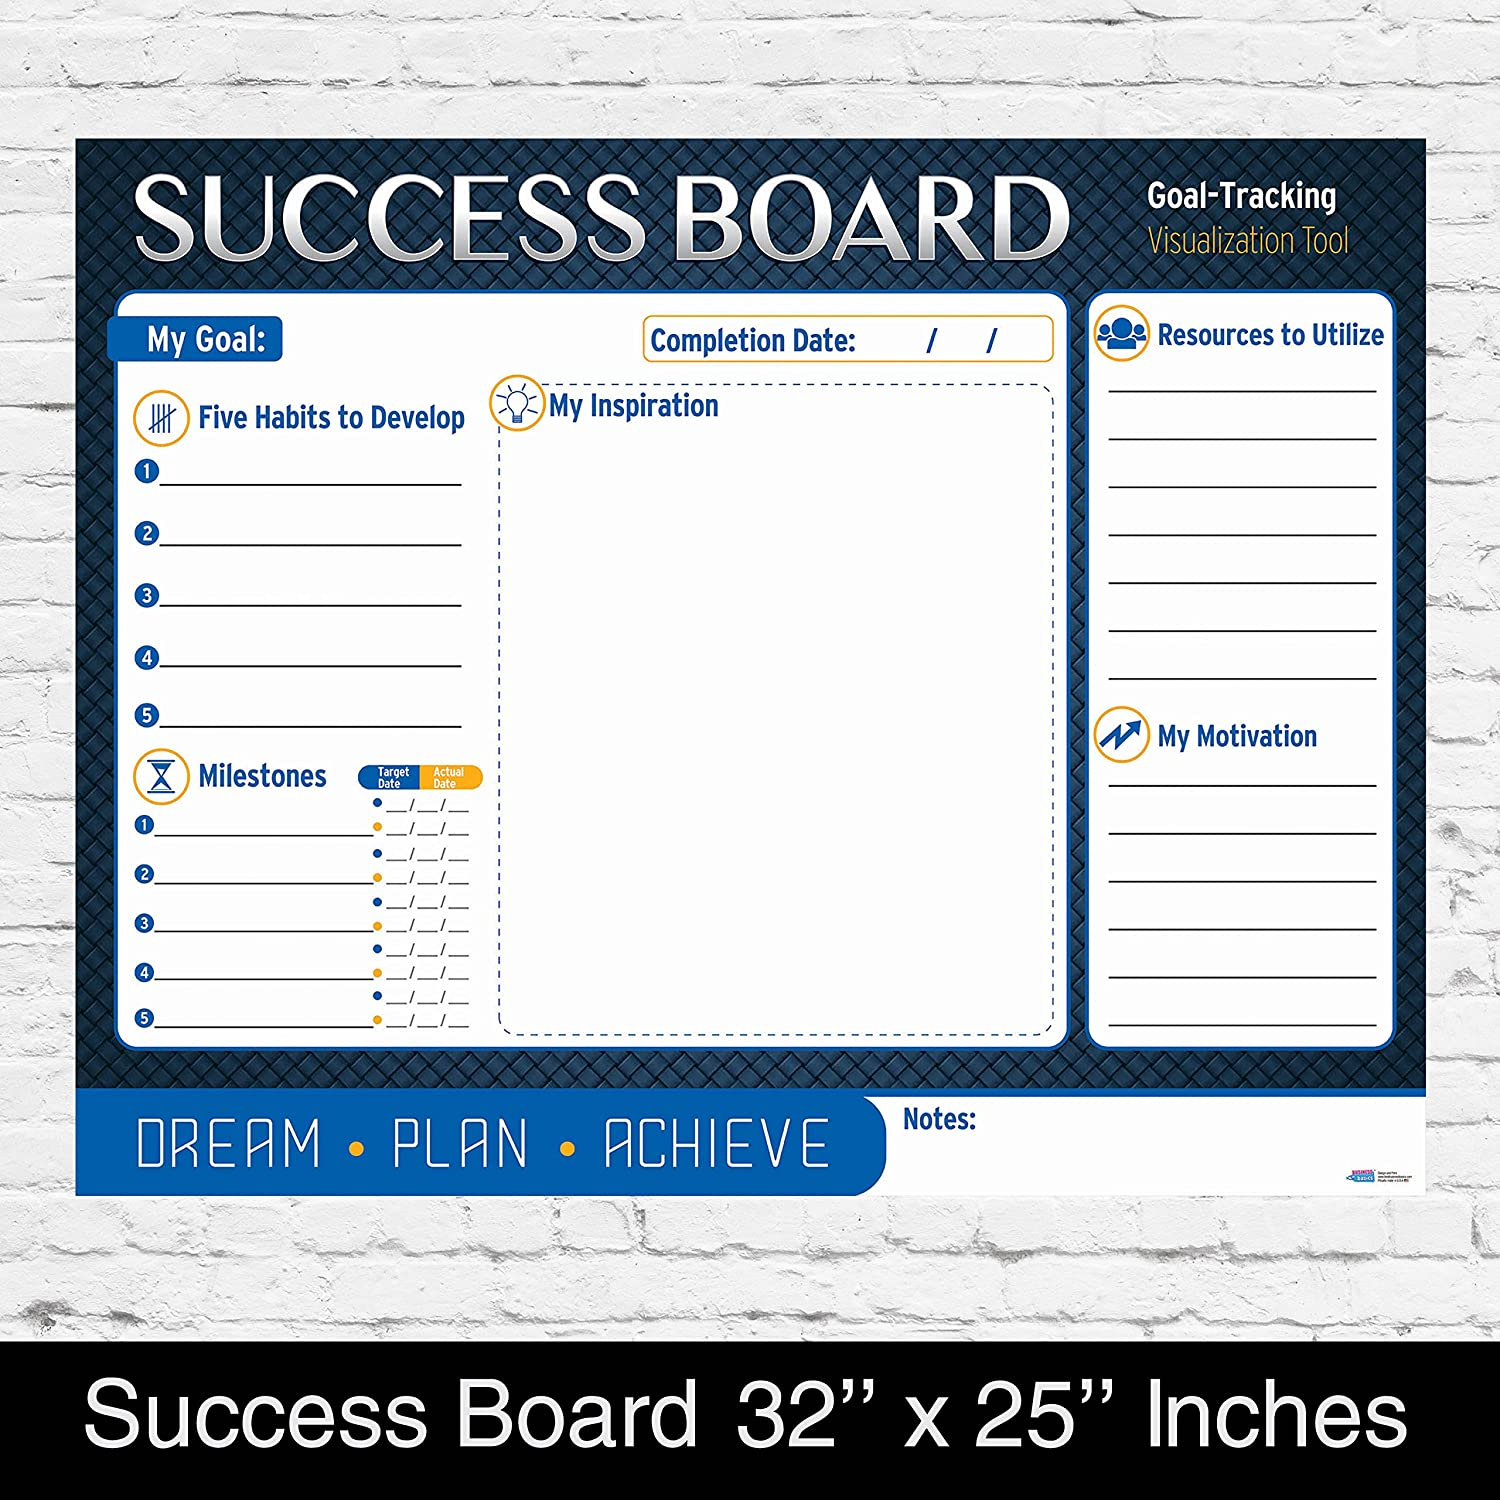 Personal Planning Success Board by Business Basics Wall Master Strategic Project Goal Setting Dry or Wet Erase Poster Perfect for Home & Office Work Use For College Students and CEO Entrepreneurs